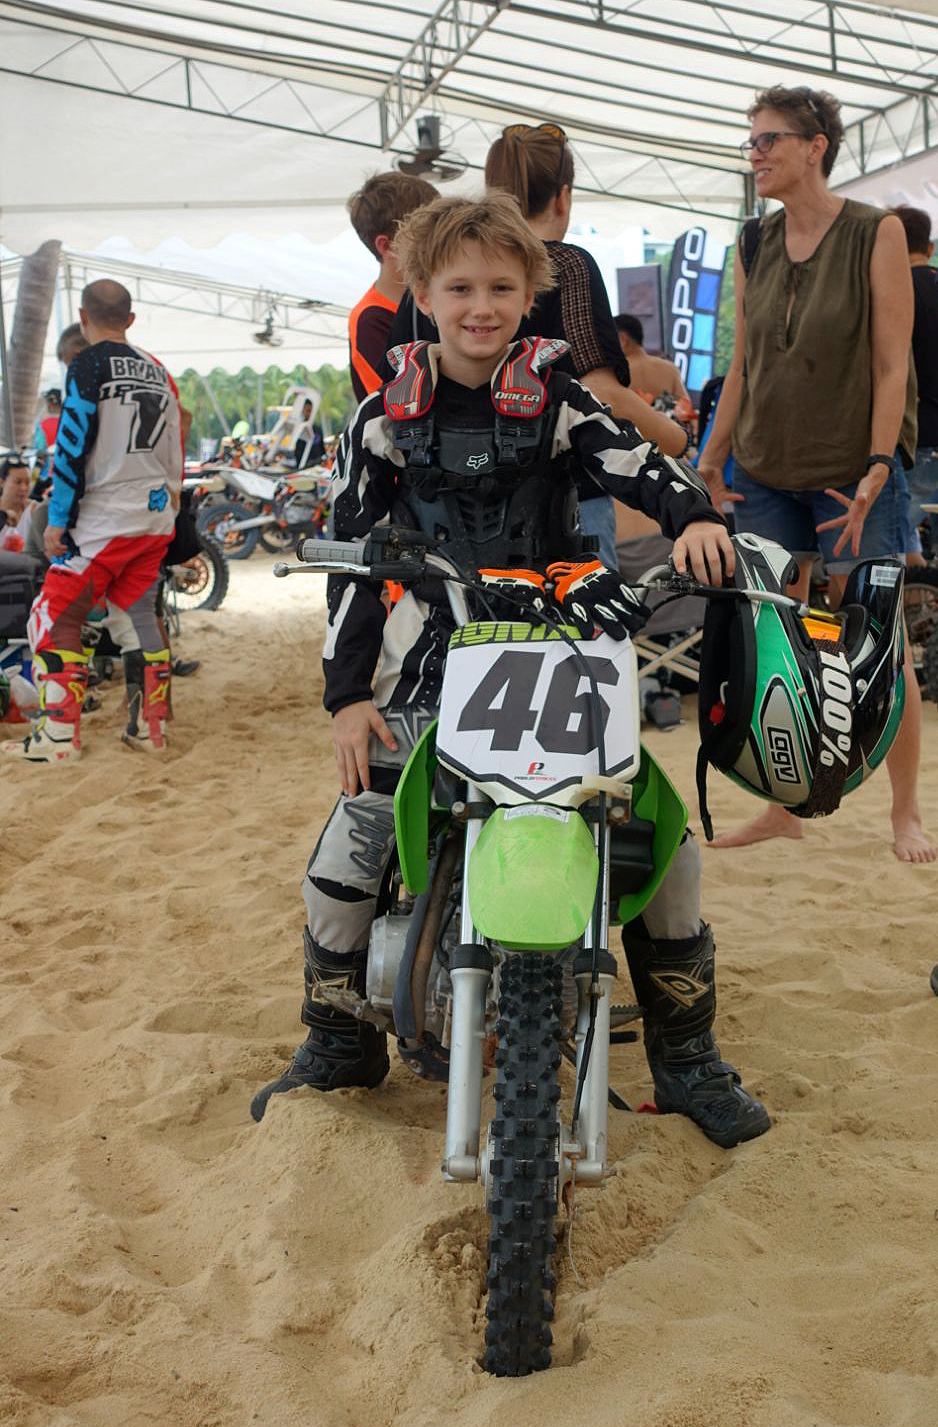 Sentosa MX Beach Race motocross